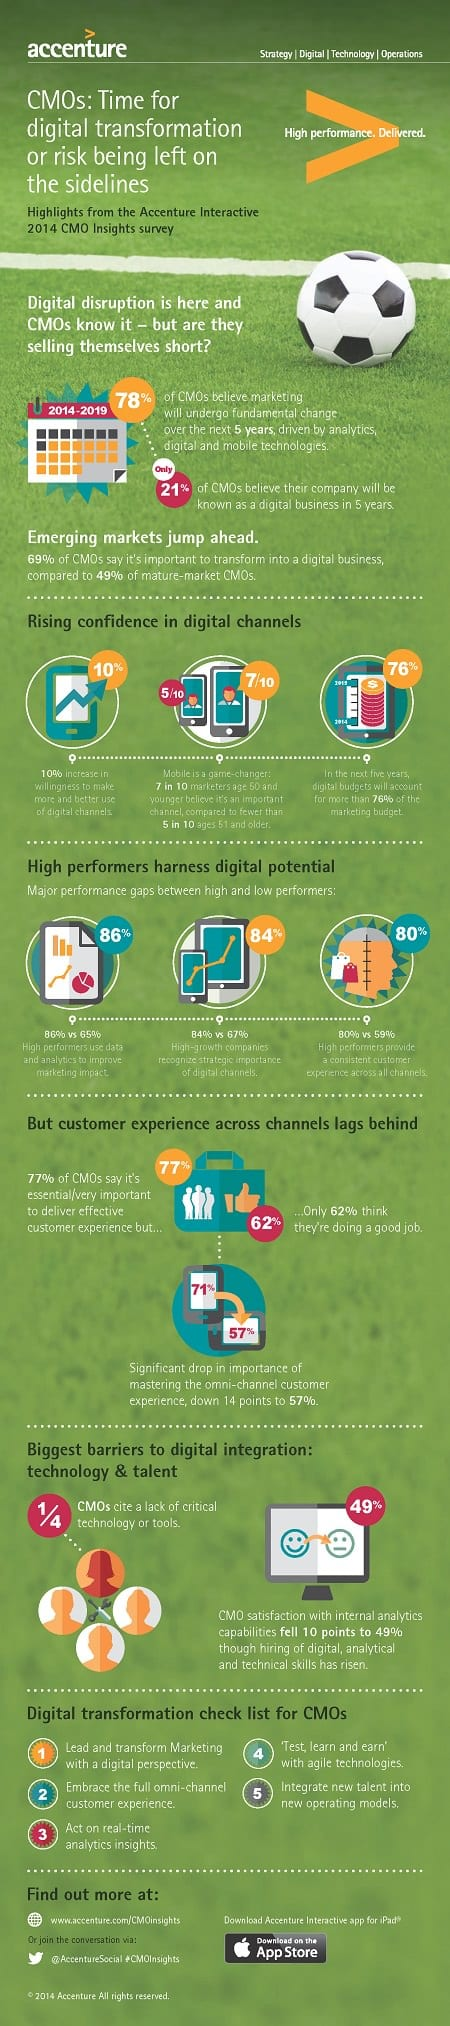 Accenture-CMO-Insights-2014-Infographic